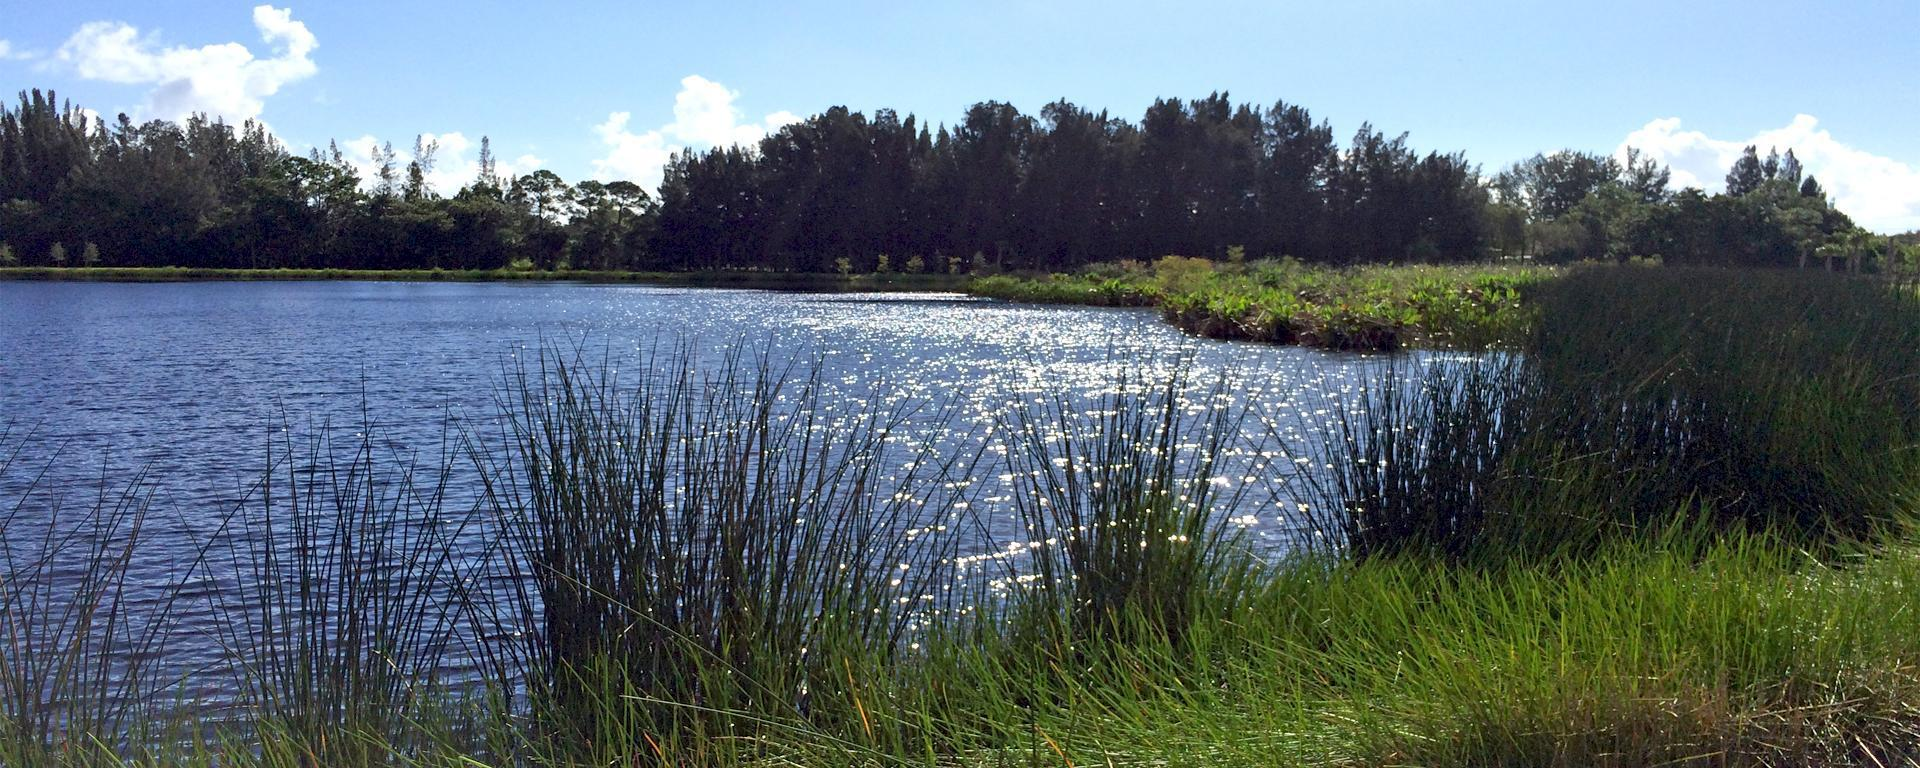 An image of Kitching Creek Preserve